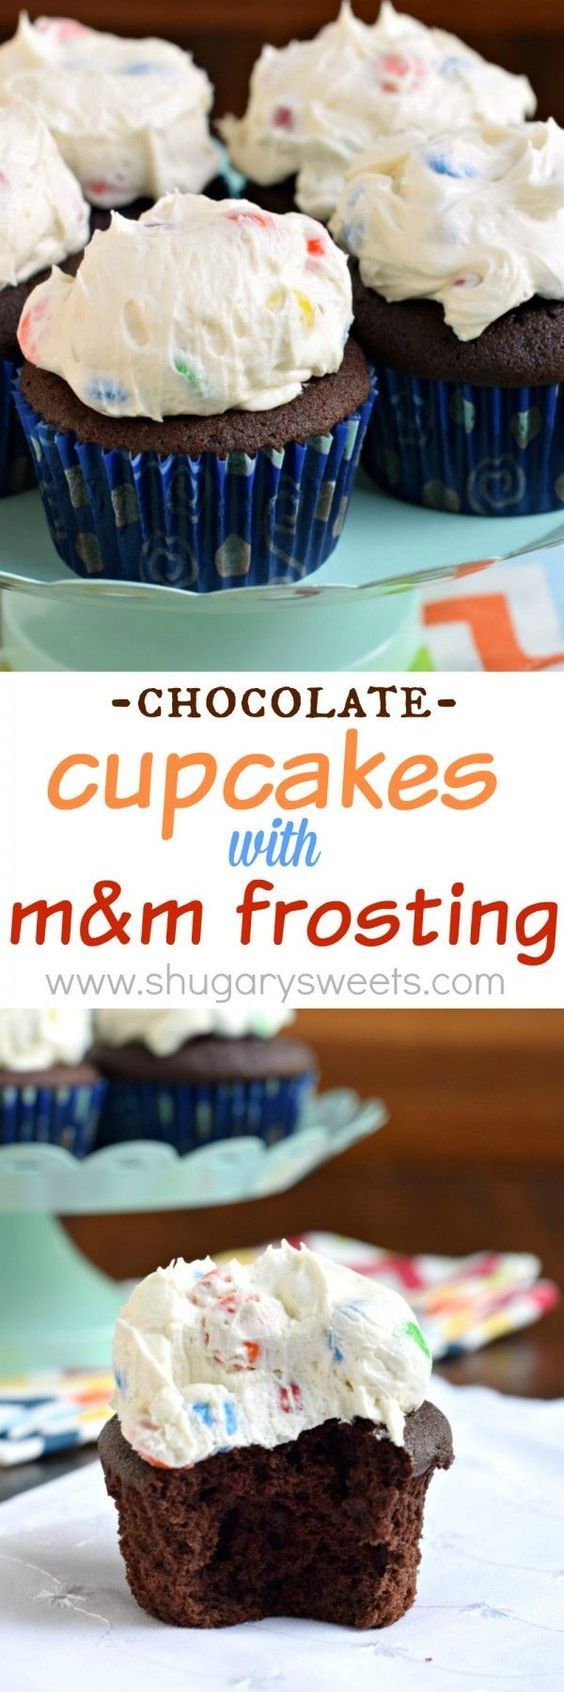 The most delicious, from scratch, Chocolate Cupcakes pile high with creamy M&M Frosting!!